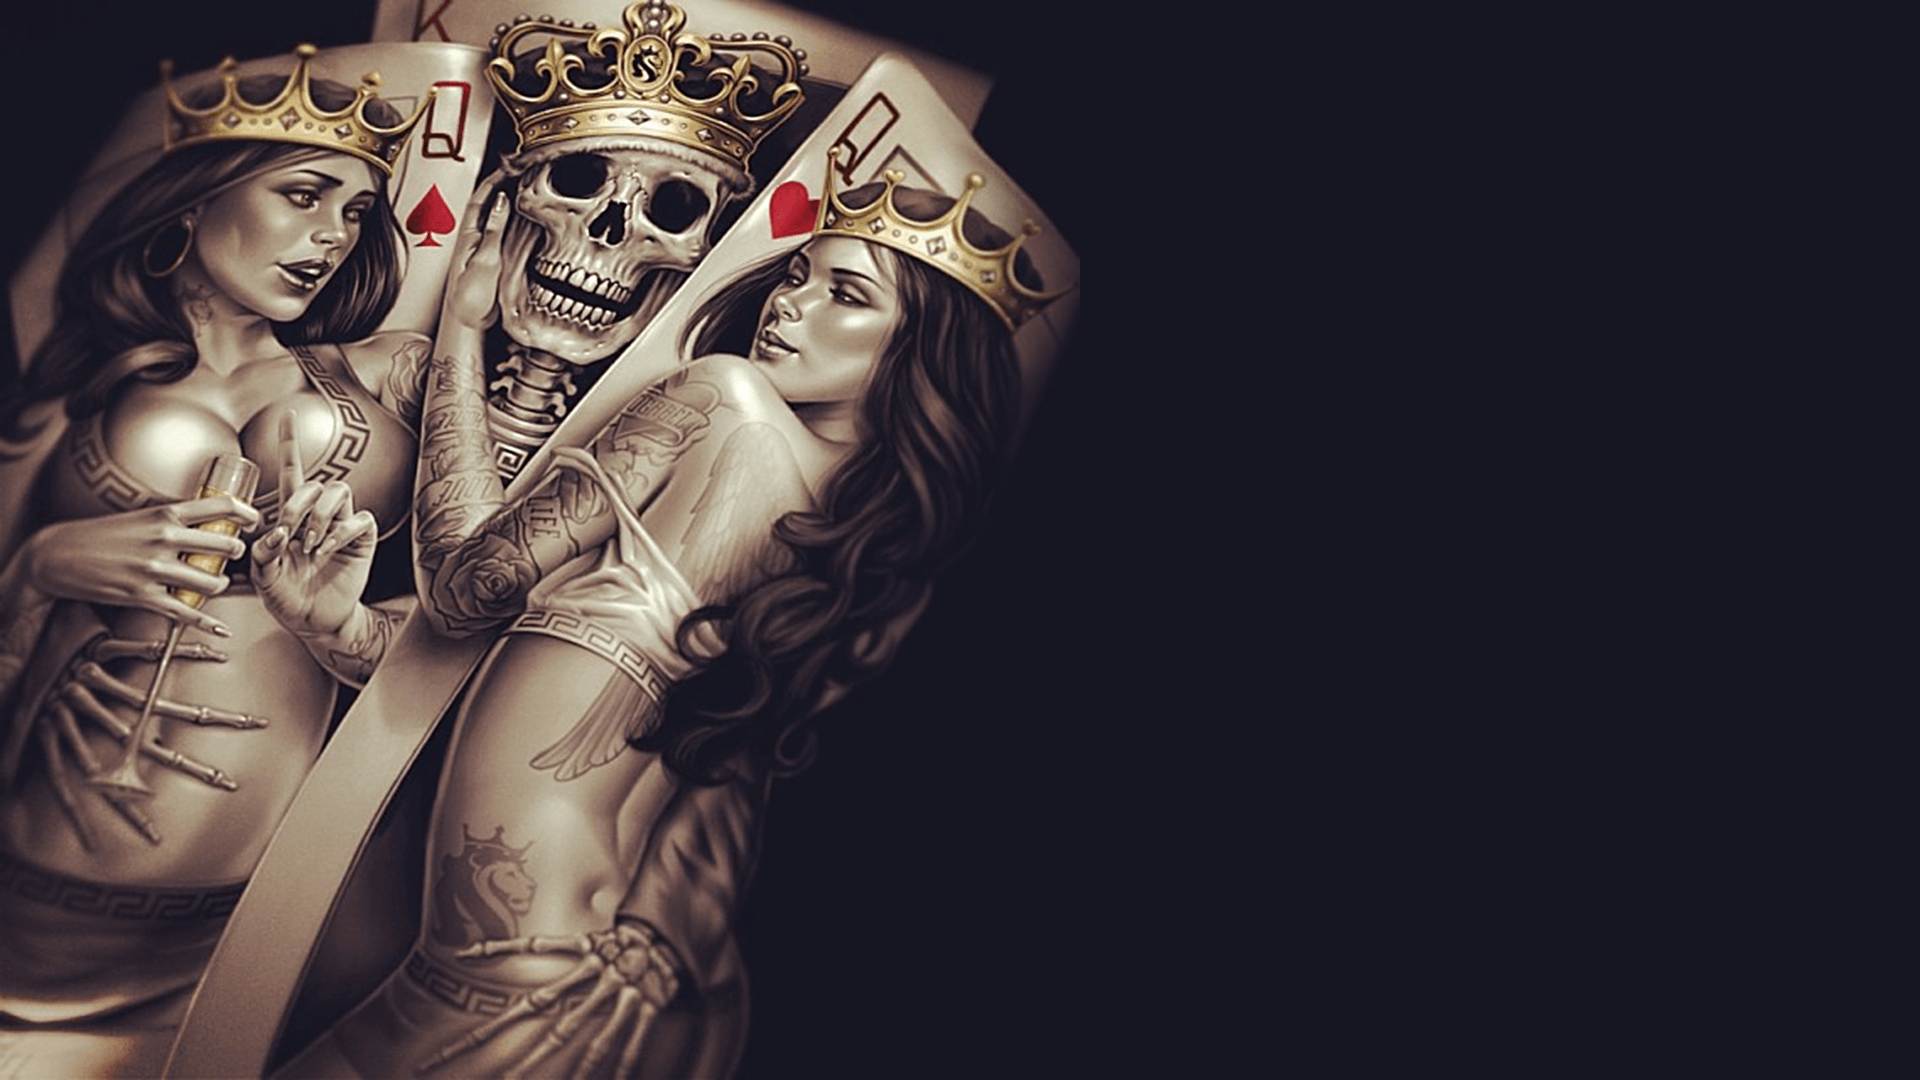 1920x1080 Skull High Quality Wallpapers HD Resolution Wallpaper 1920x1080 px ...